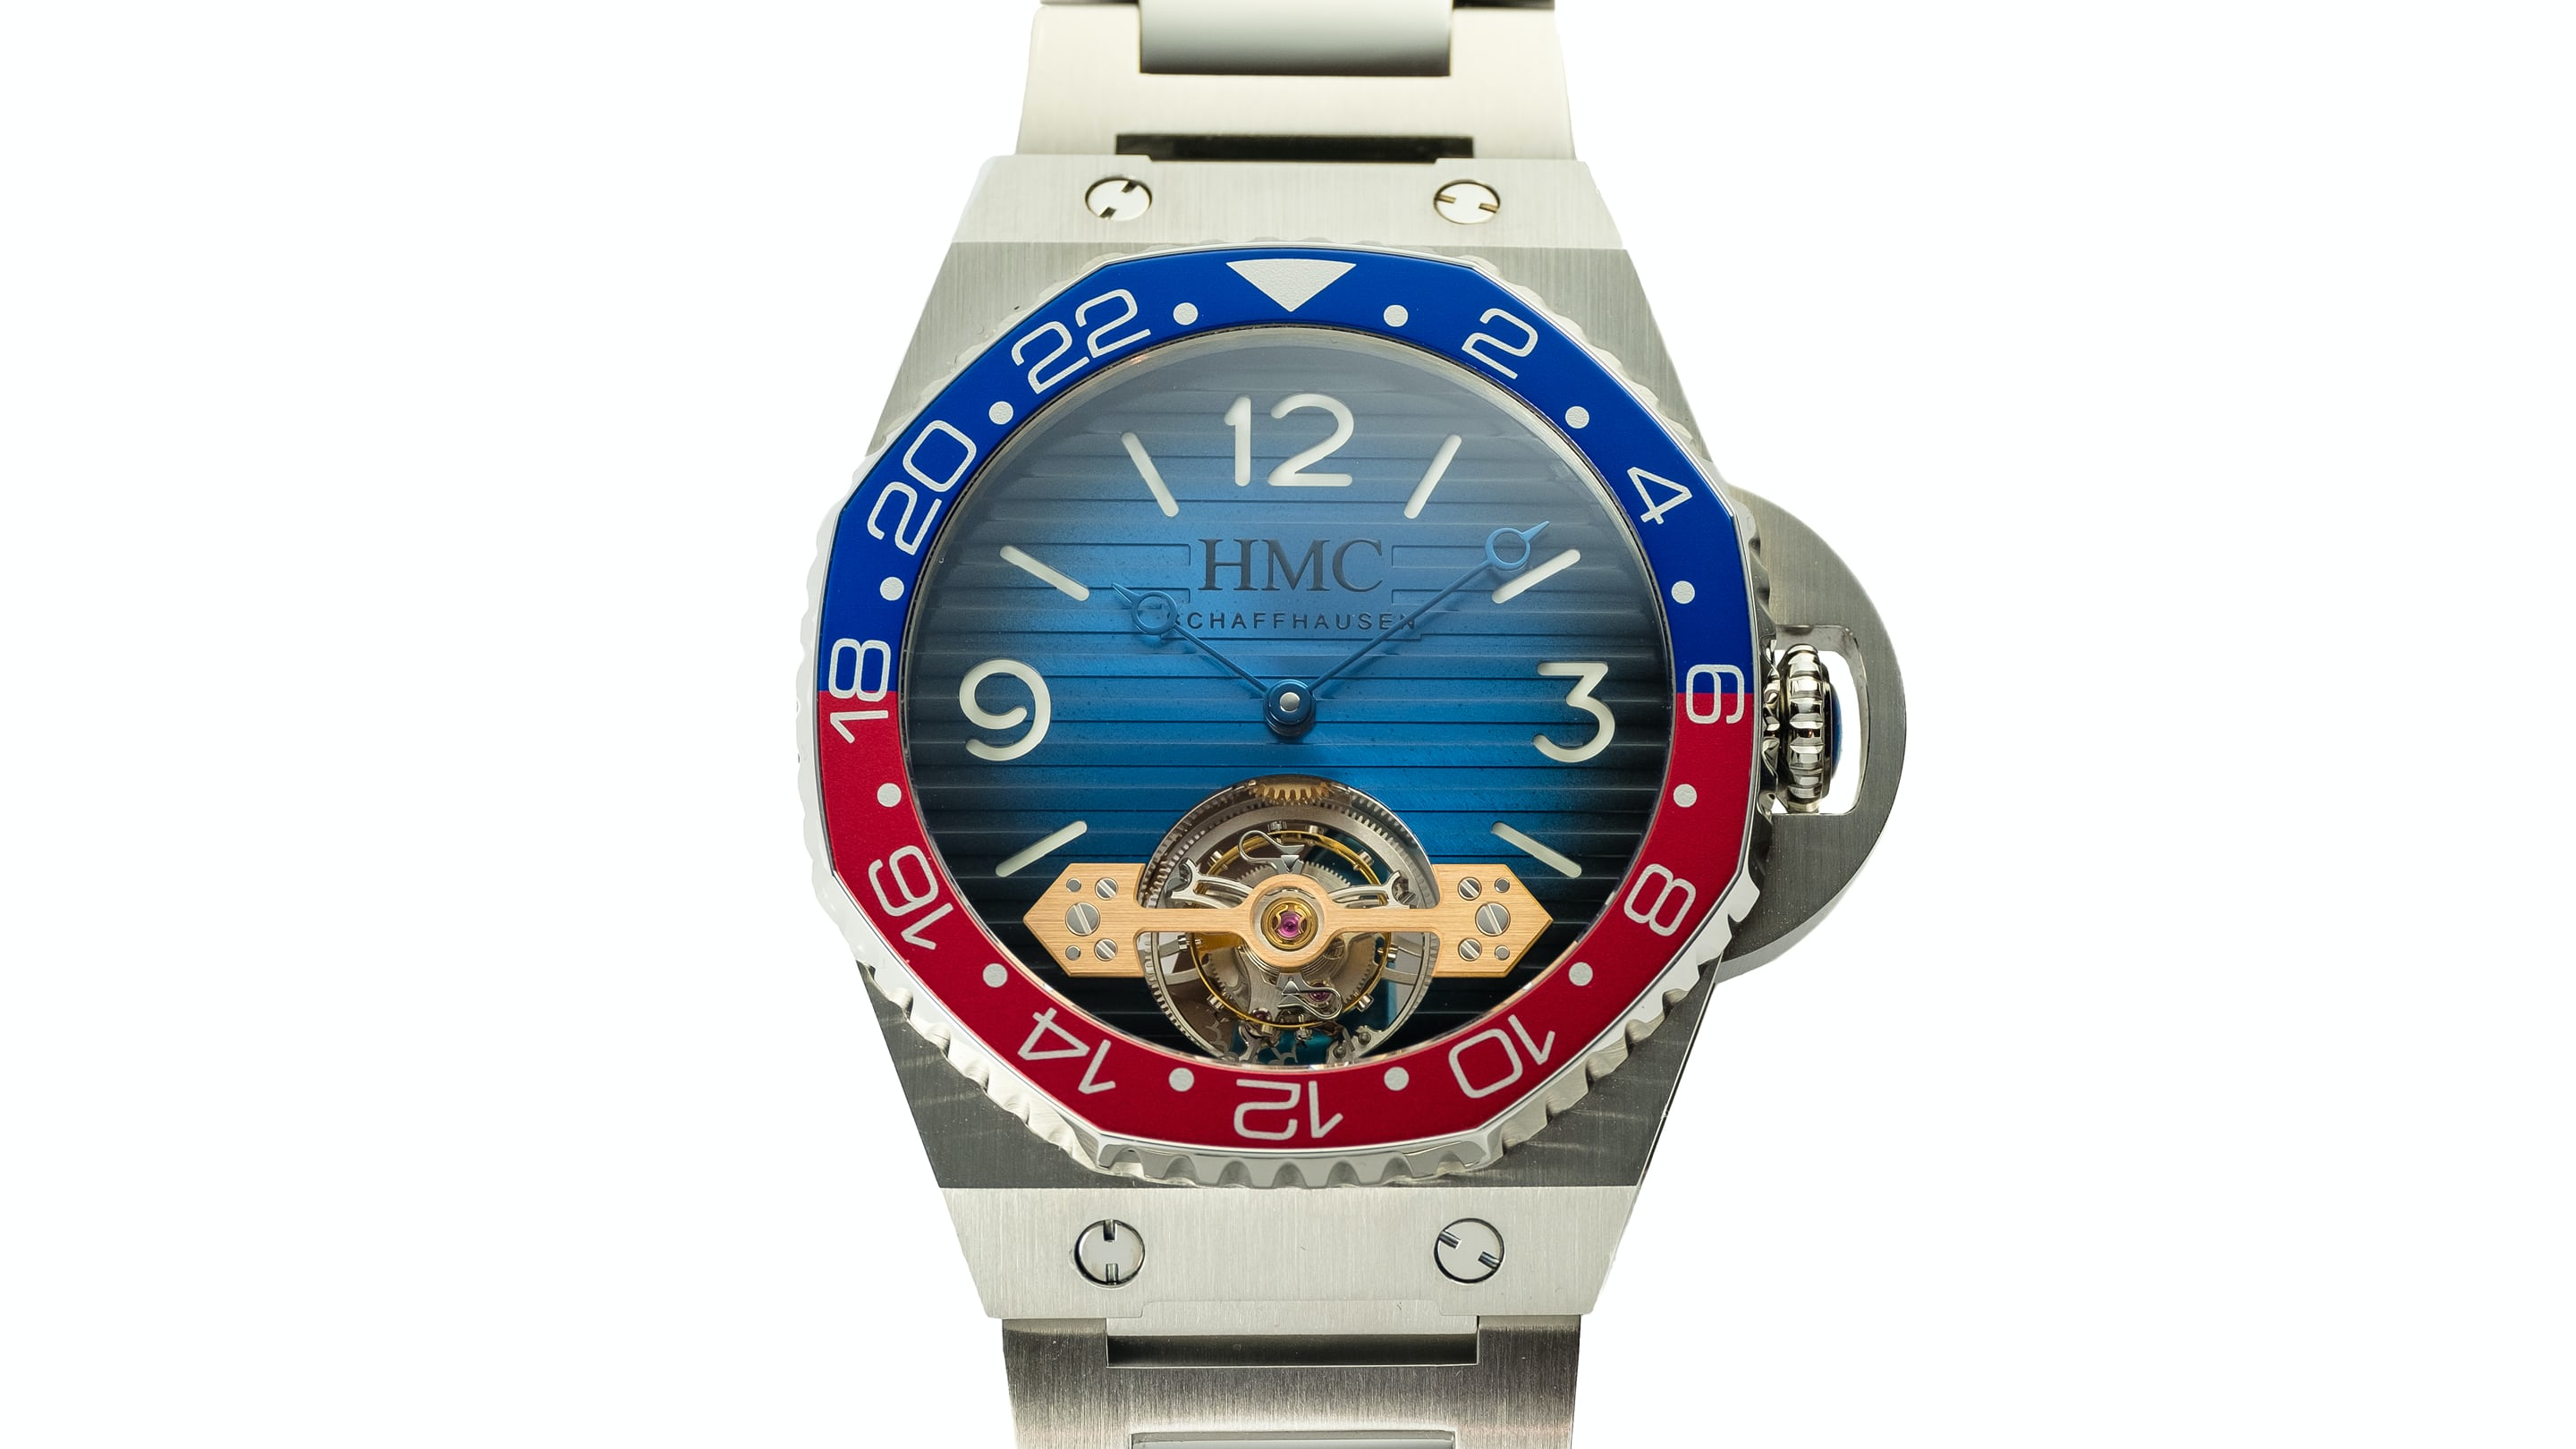 official aqw fishing watches watch world youtube casio